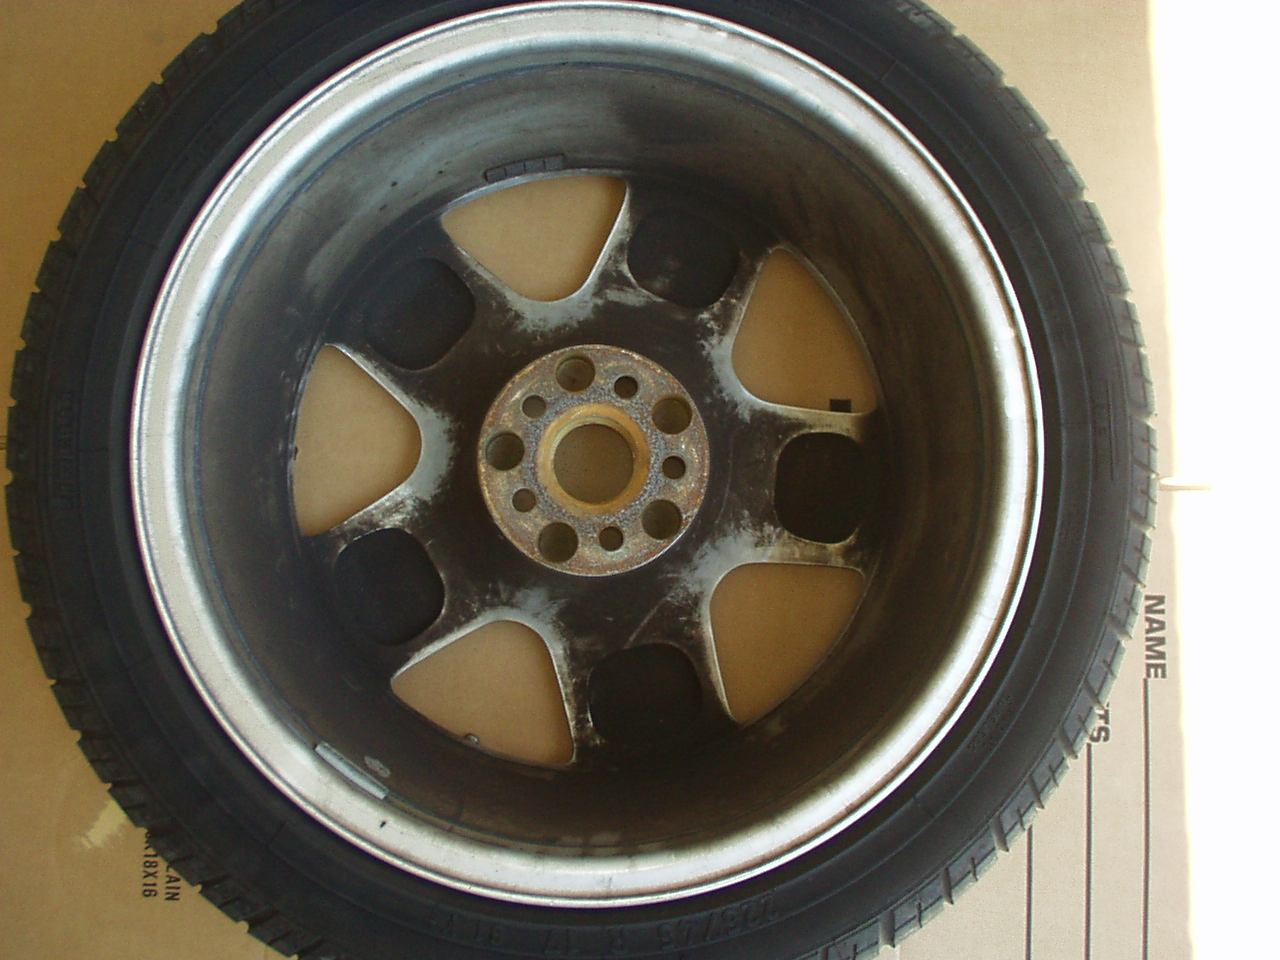 080802 wheel cleaning 012